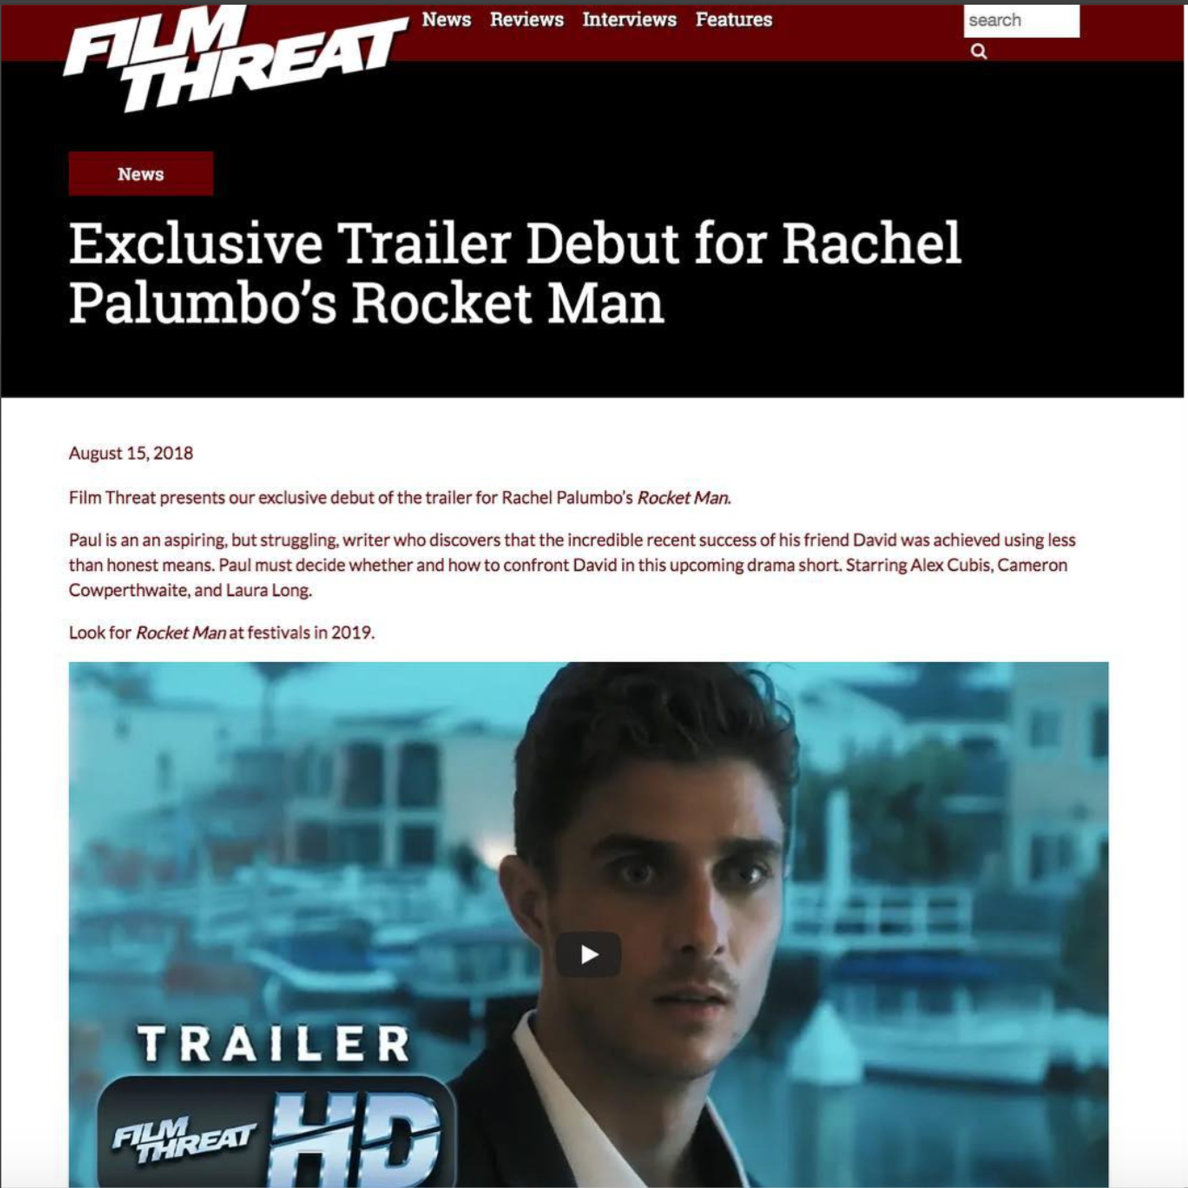 Film Threat 'Rocket Man' Trailer Debut